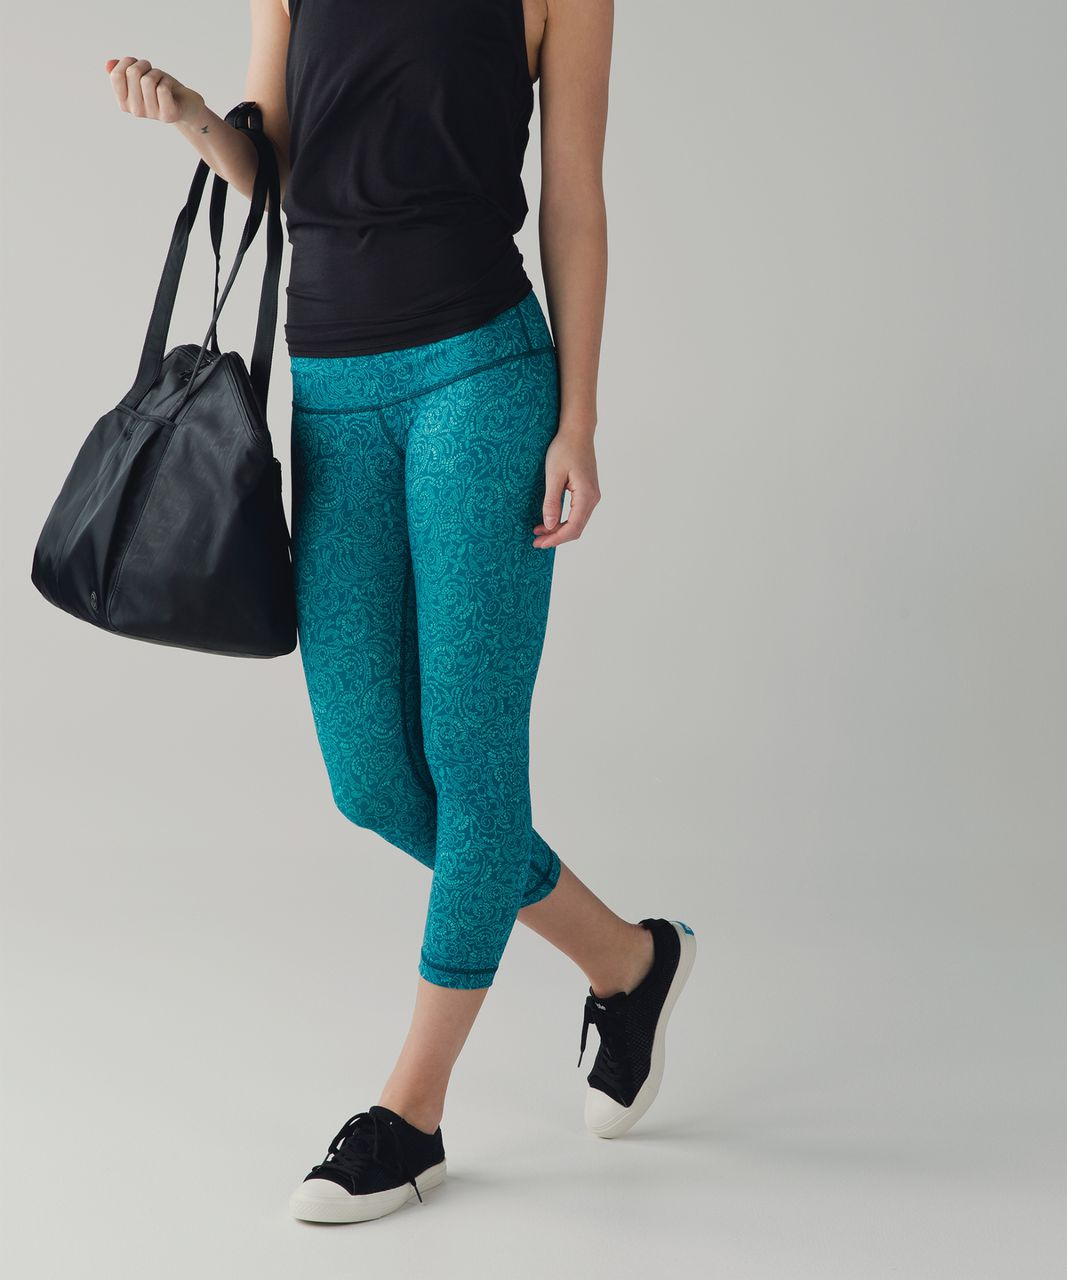 Lululemon Wunder Under Crop III - Foli Manifesto Bali Breeze Tofino Teal